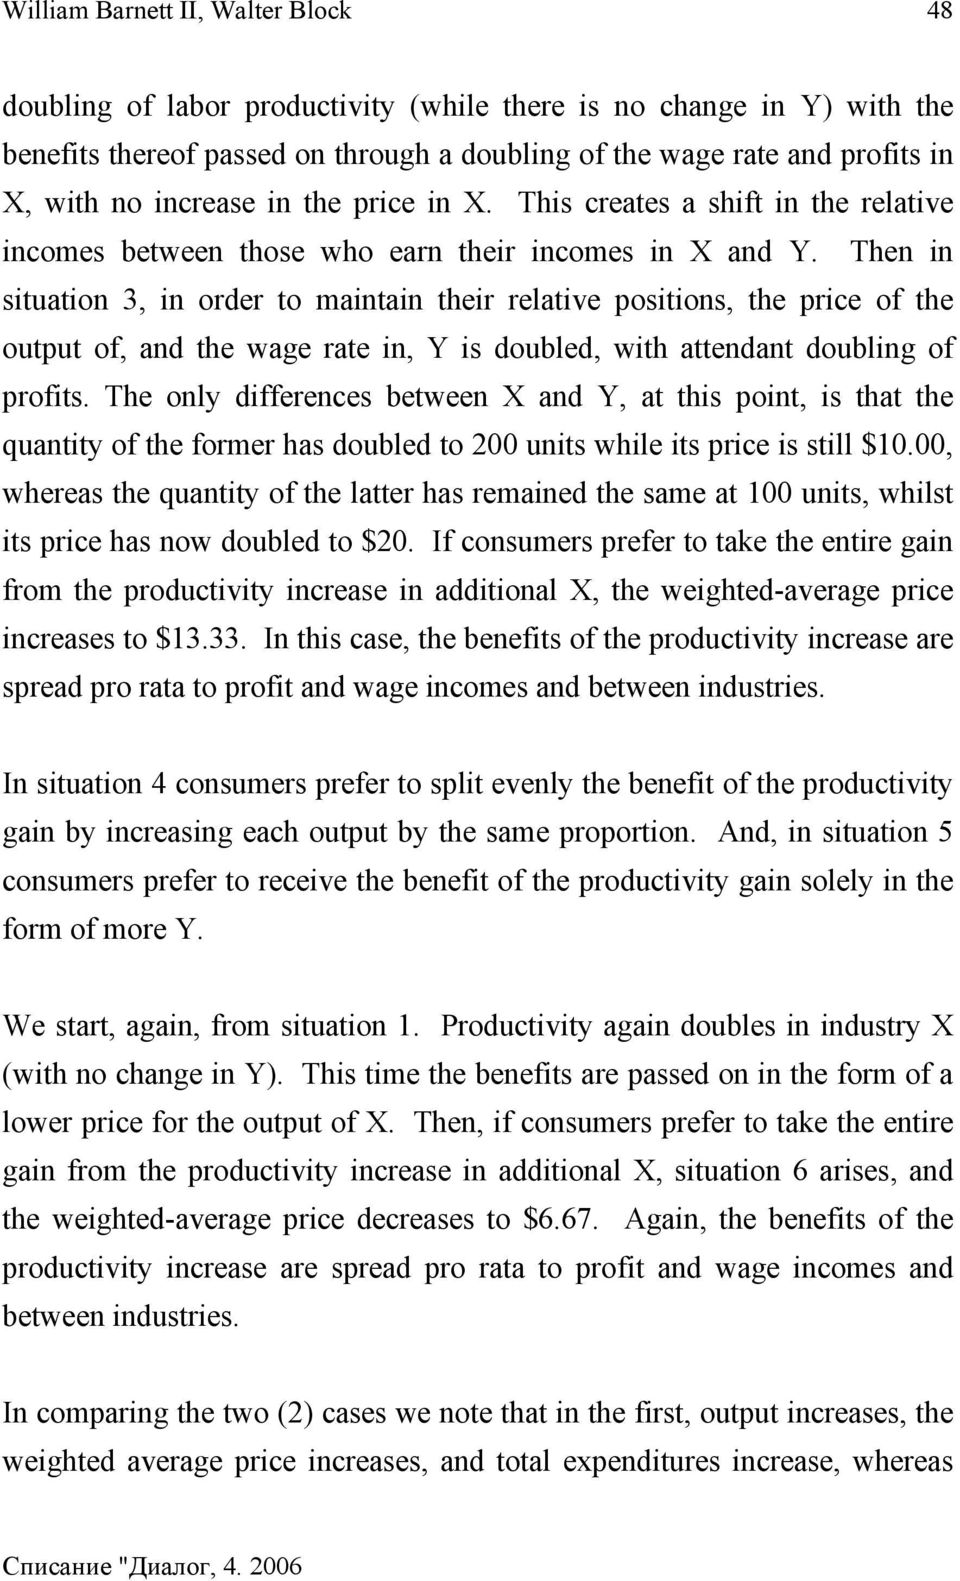 Then in situation 3, in order to maintain their relative positions, the price of the output of, and the wage rate in, Y is doubled, with attendant doubling of profits.